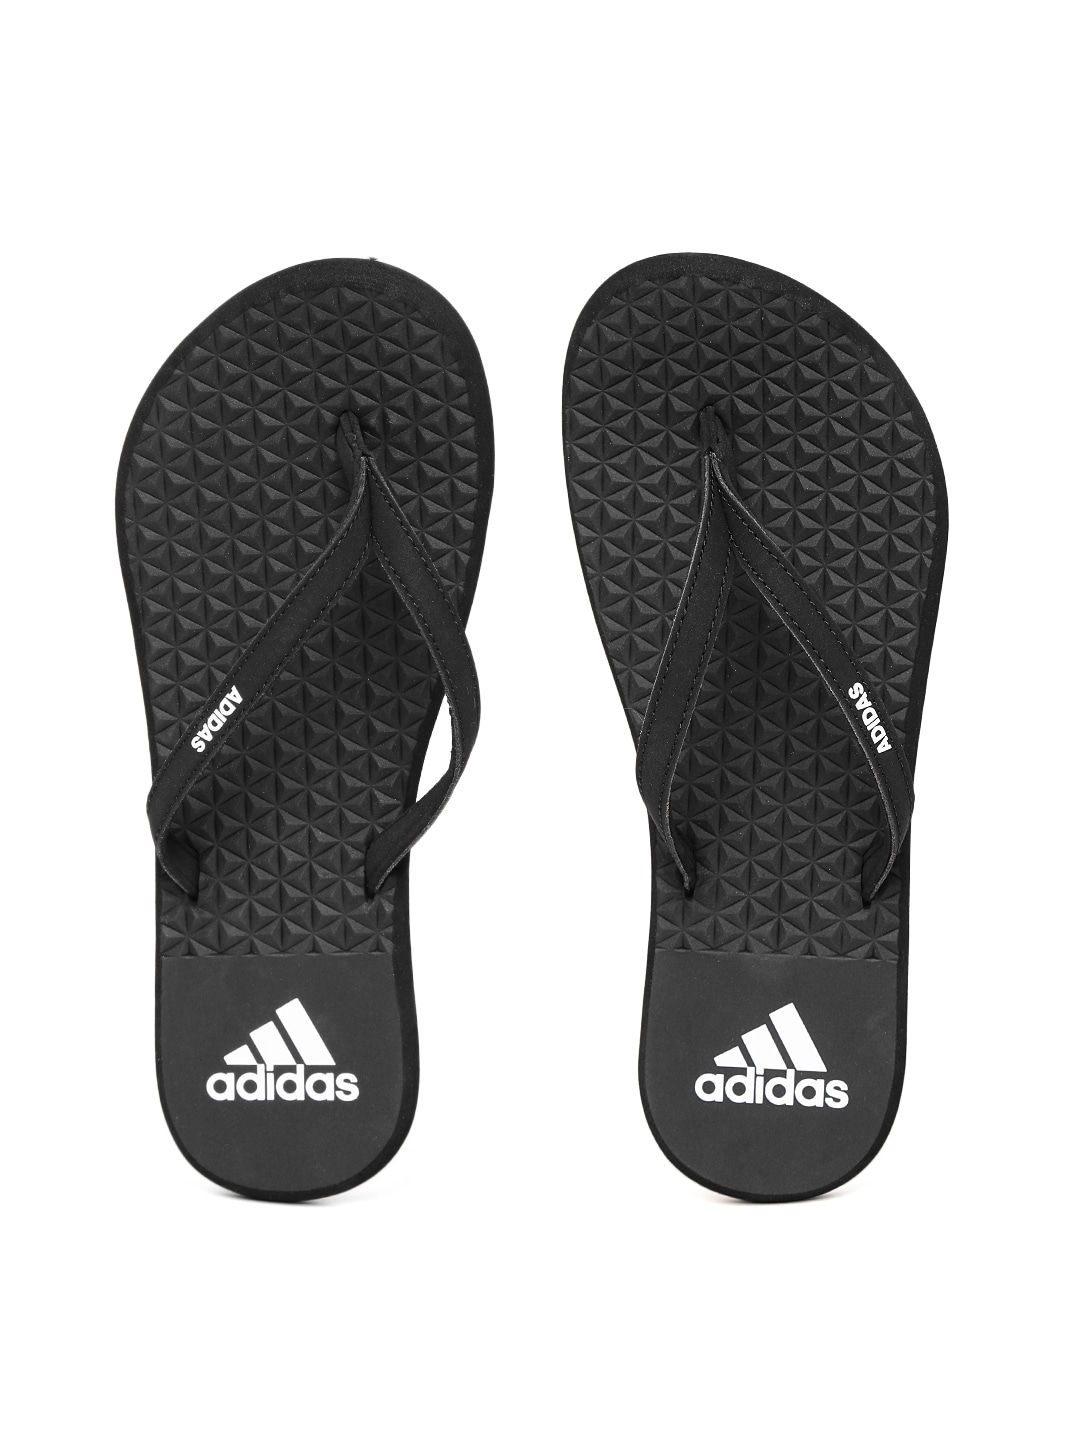 47766d941 Women s Adidas Flip Flops - Buy Adidas Flip Flops for Women Online in India